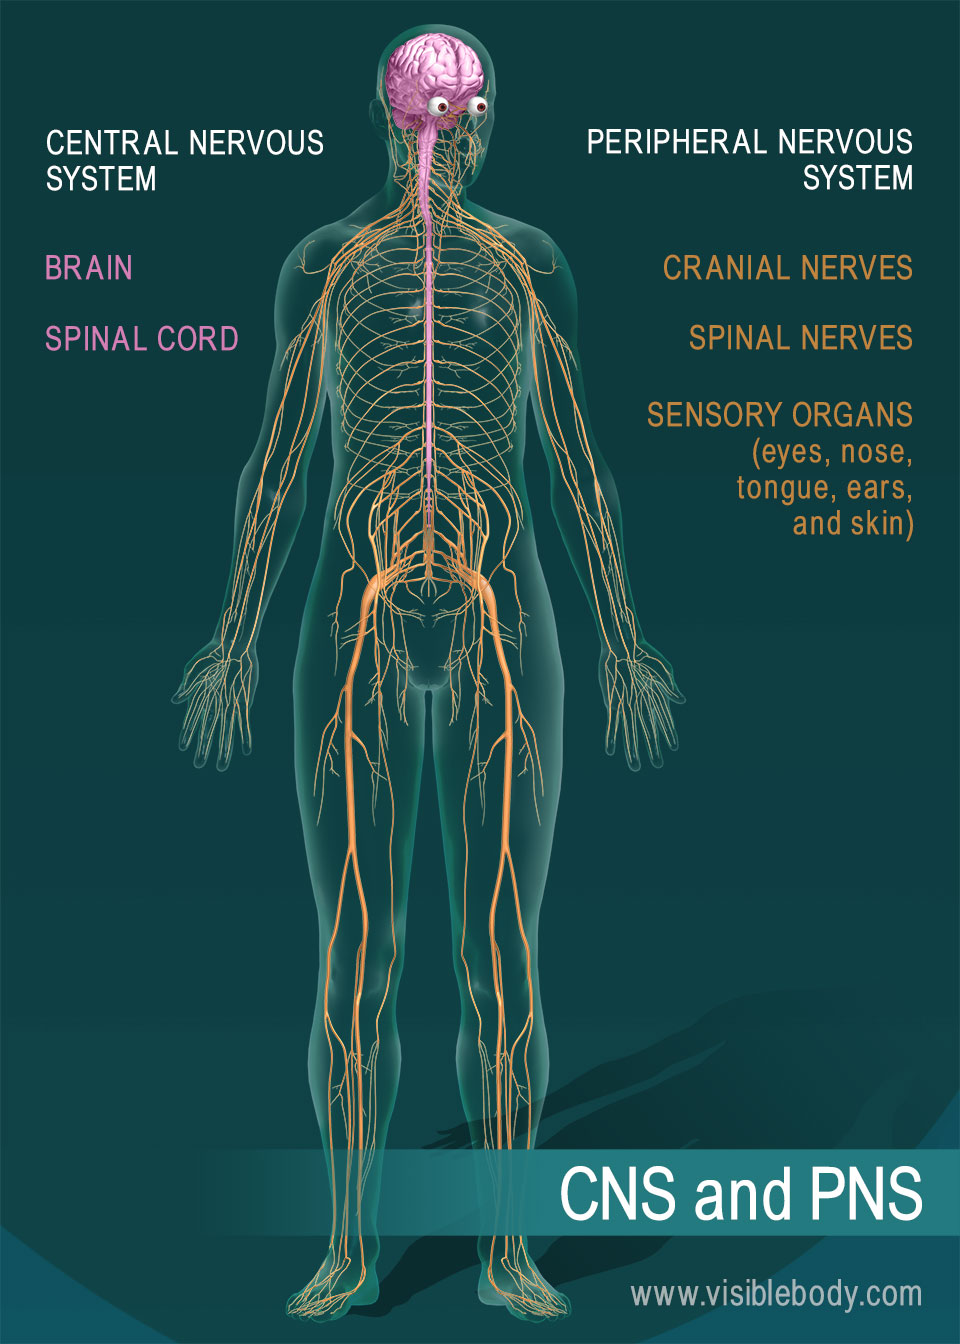 Nervous system overview the brain and spinal cord are the central nervous system nerves and sensory organs make up the peripheral nervous system ccuart Images